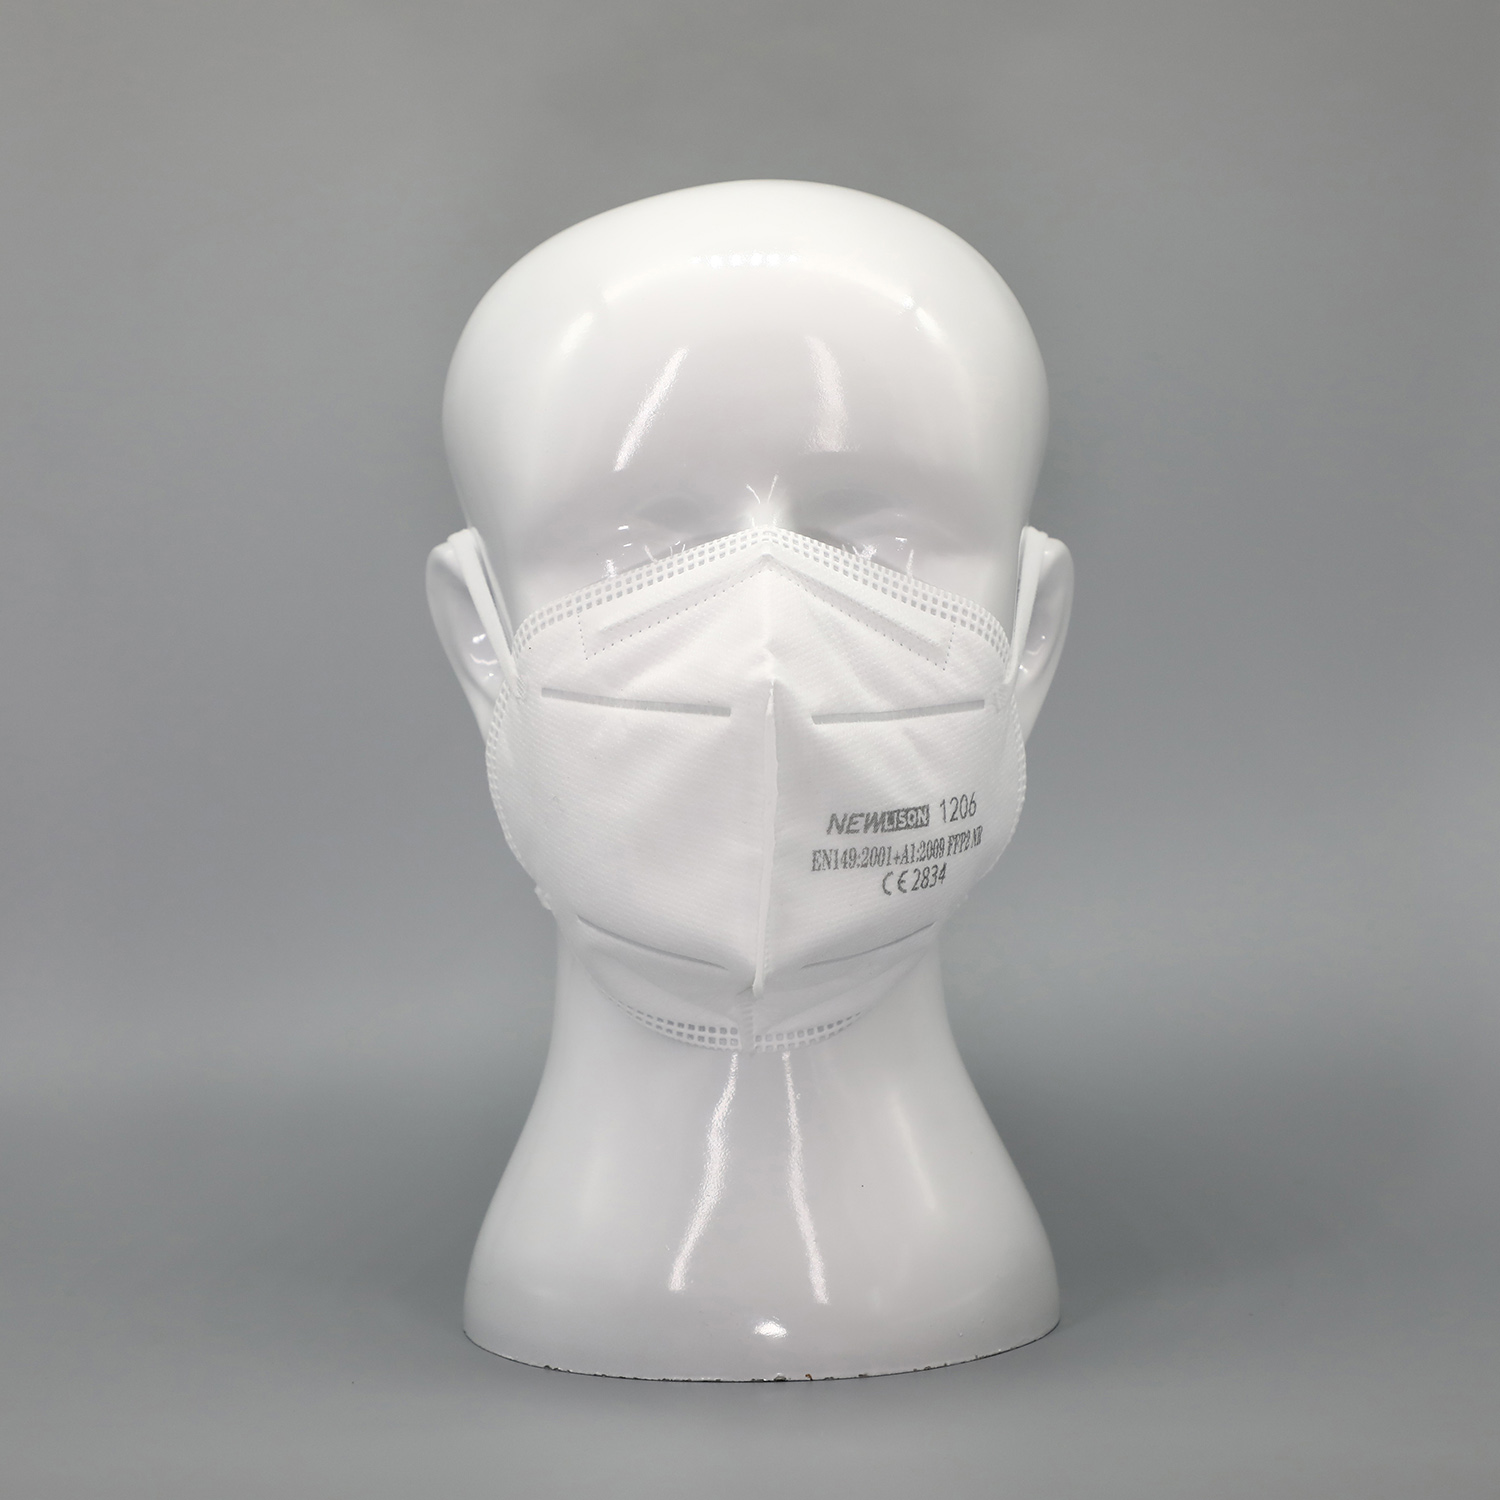 RTS 1206 FFP2 Newlison Mask Made In China CE Certificated PPE KN95 White List Custom Face Mask FFP2 - KingCare   KingCare.net